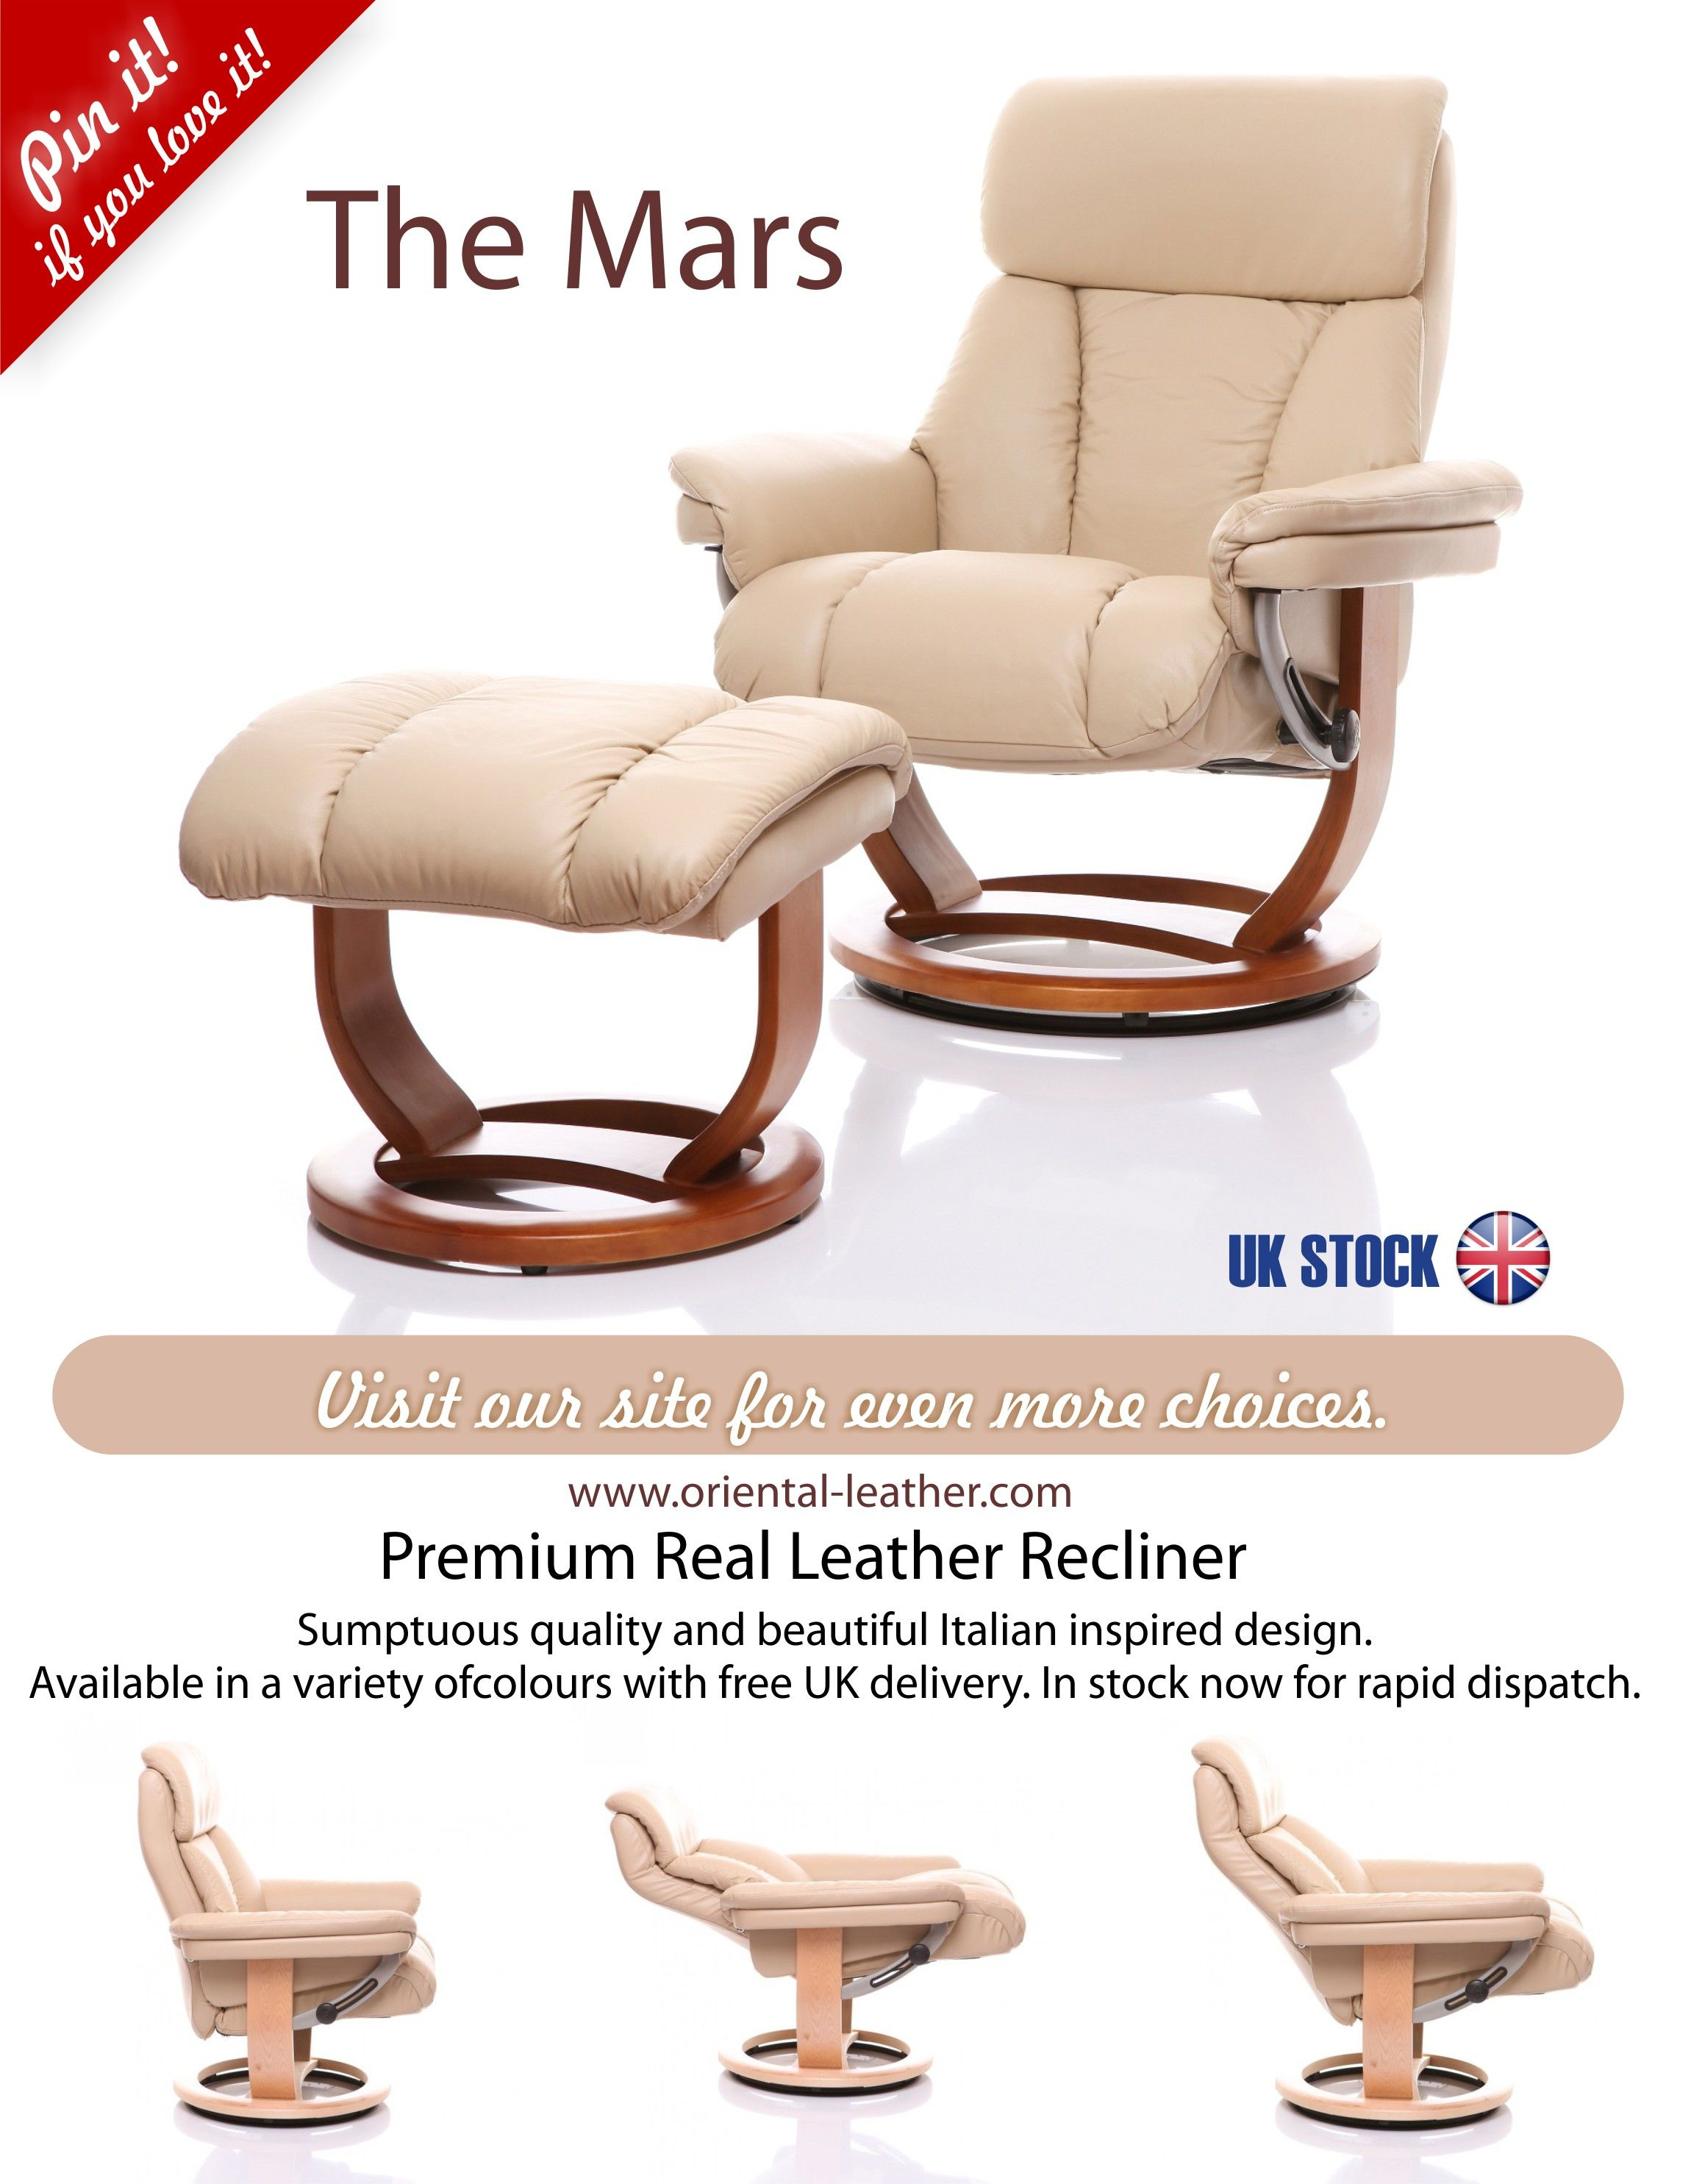 The Mars Italian Inspired Design Premium Quality Leather Recliner Chair Available In Uk A Range Of Colours